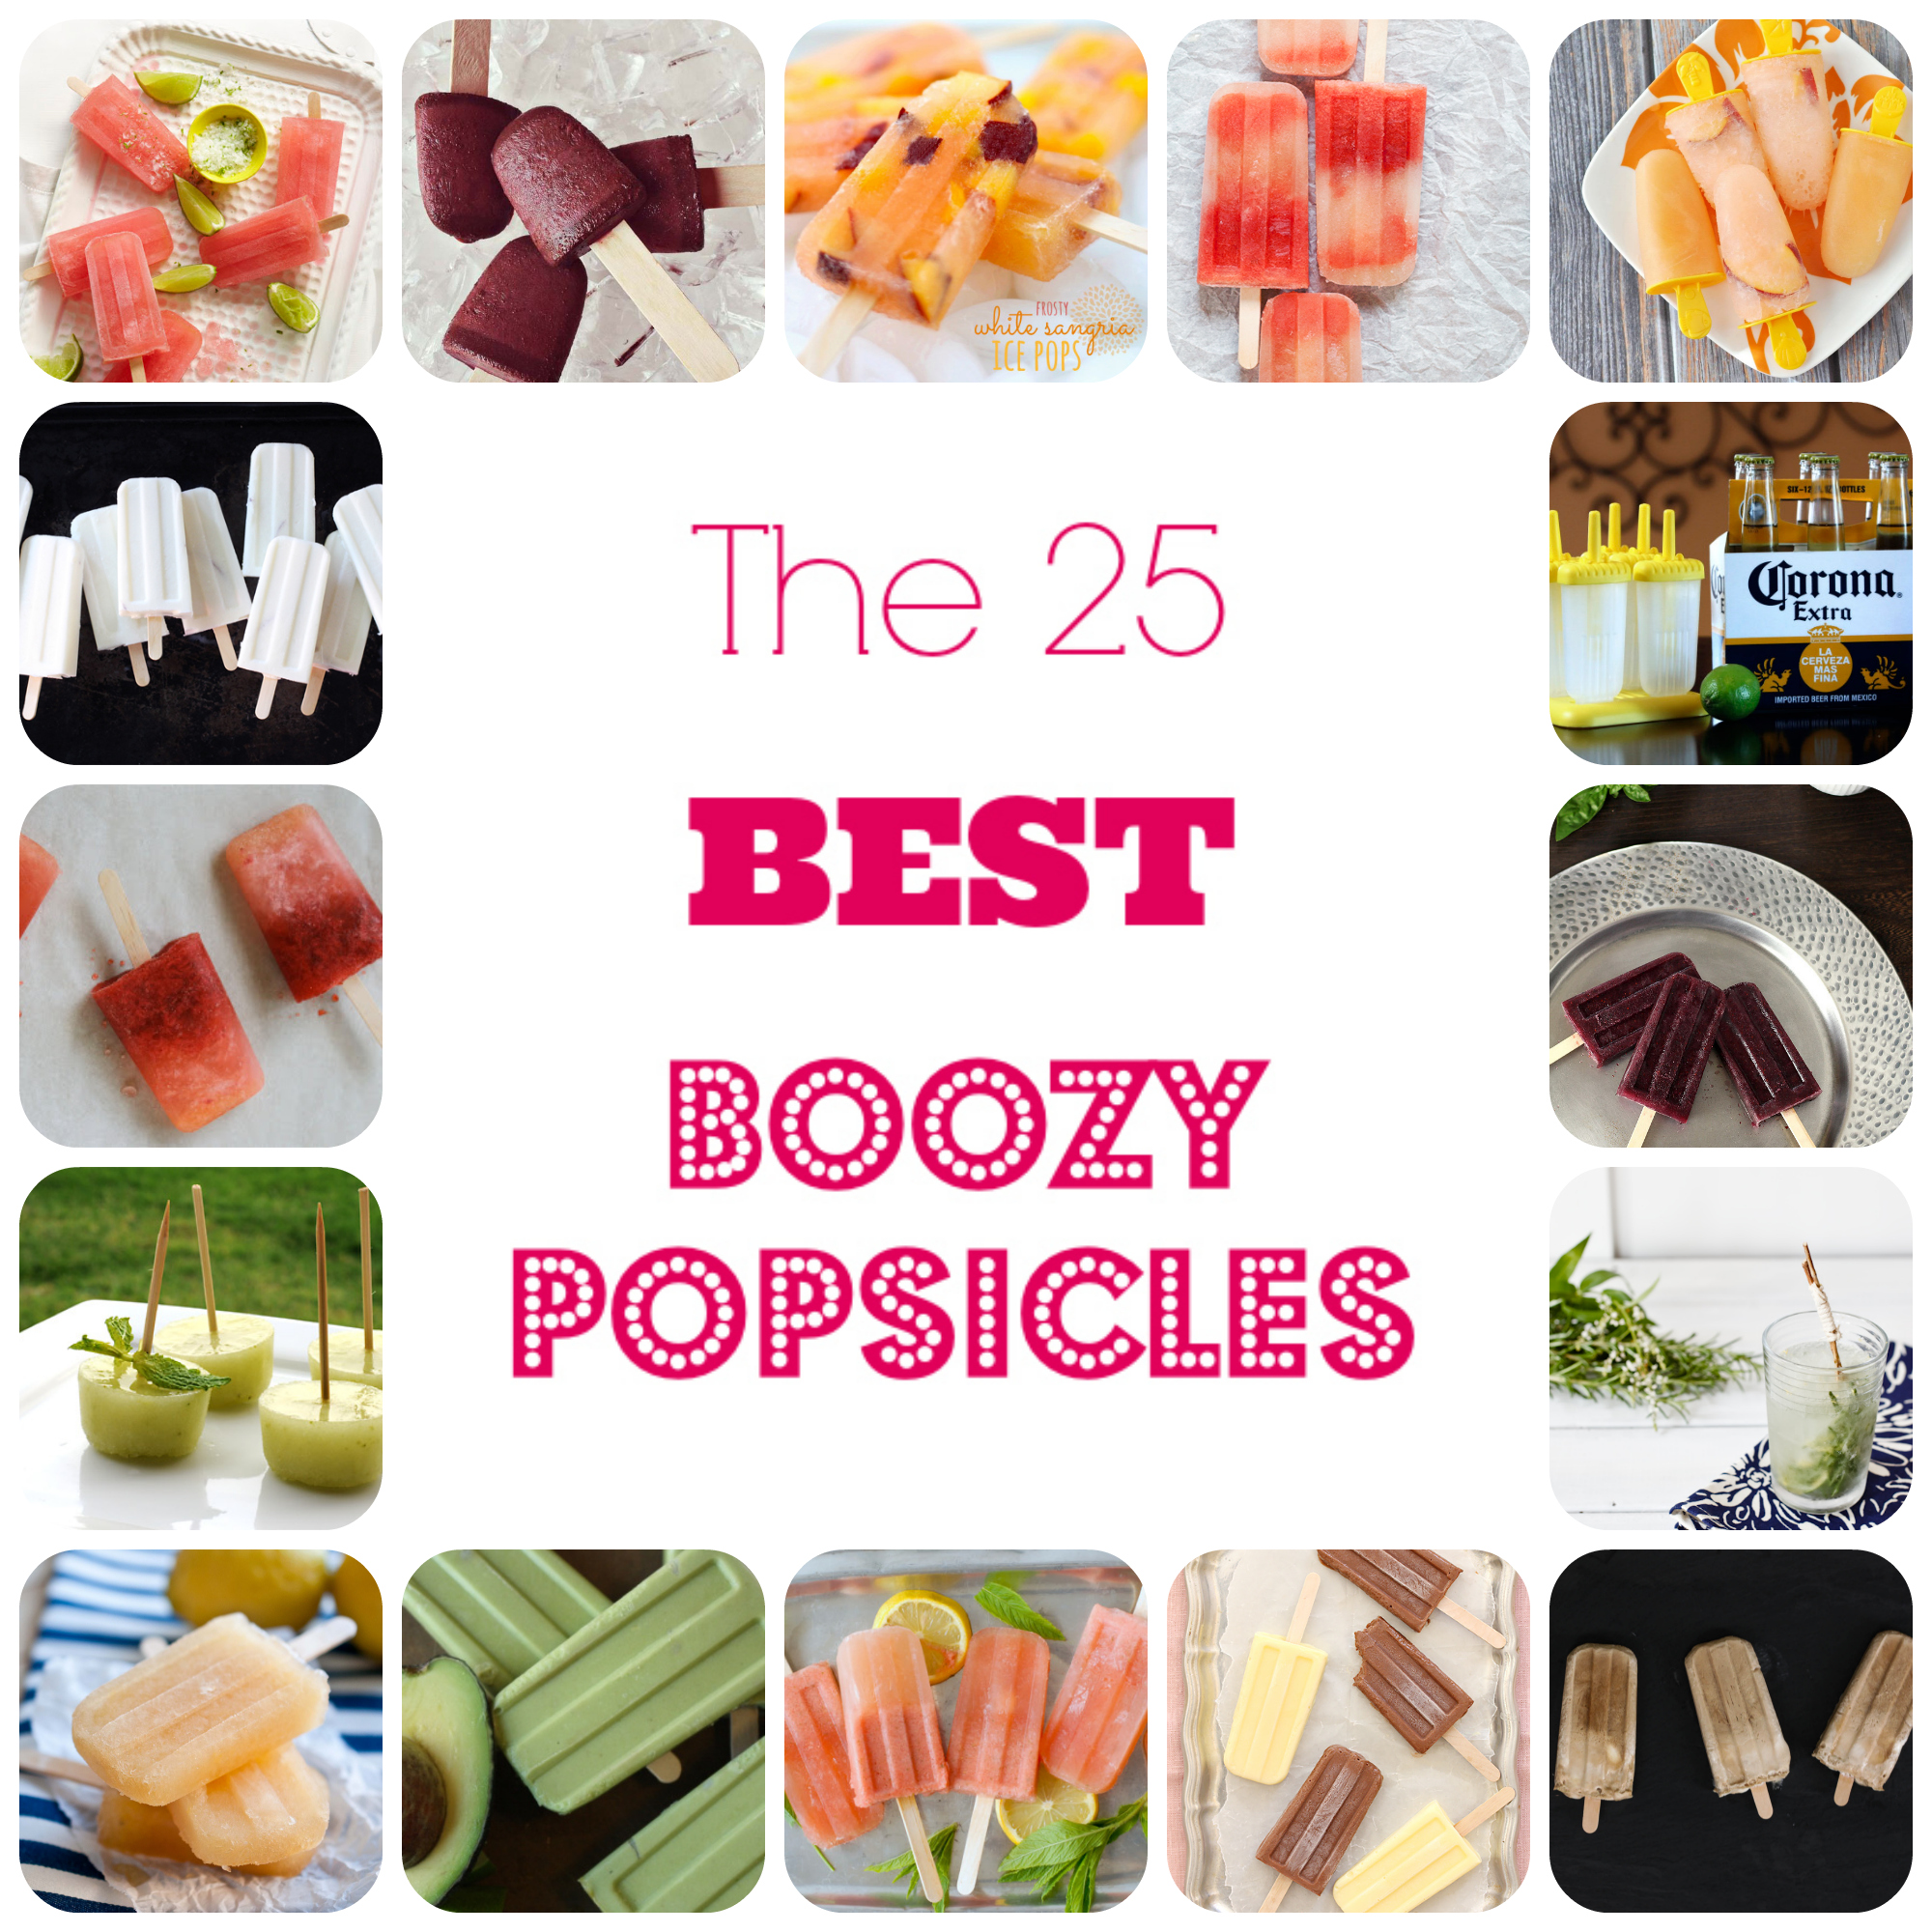 The 25 Best Boozy Popsicle Recipes